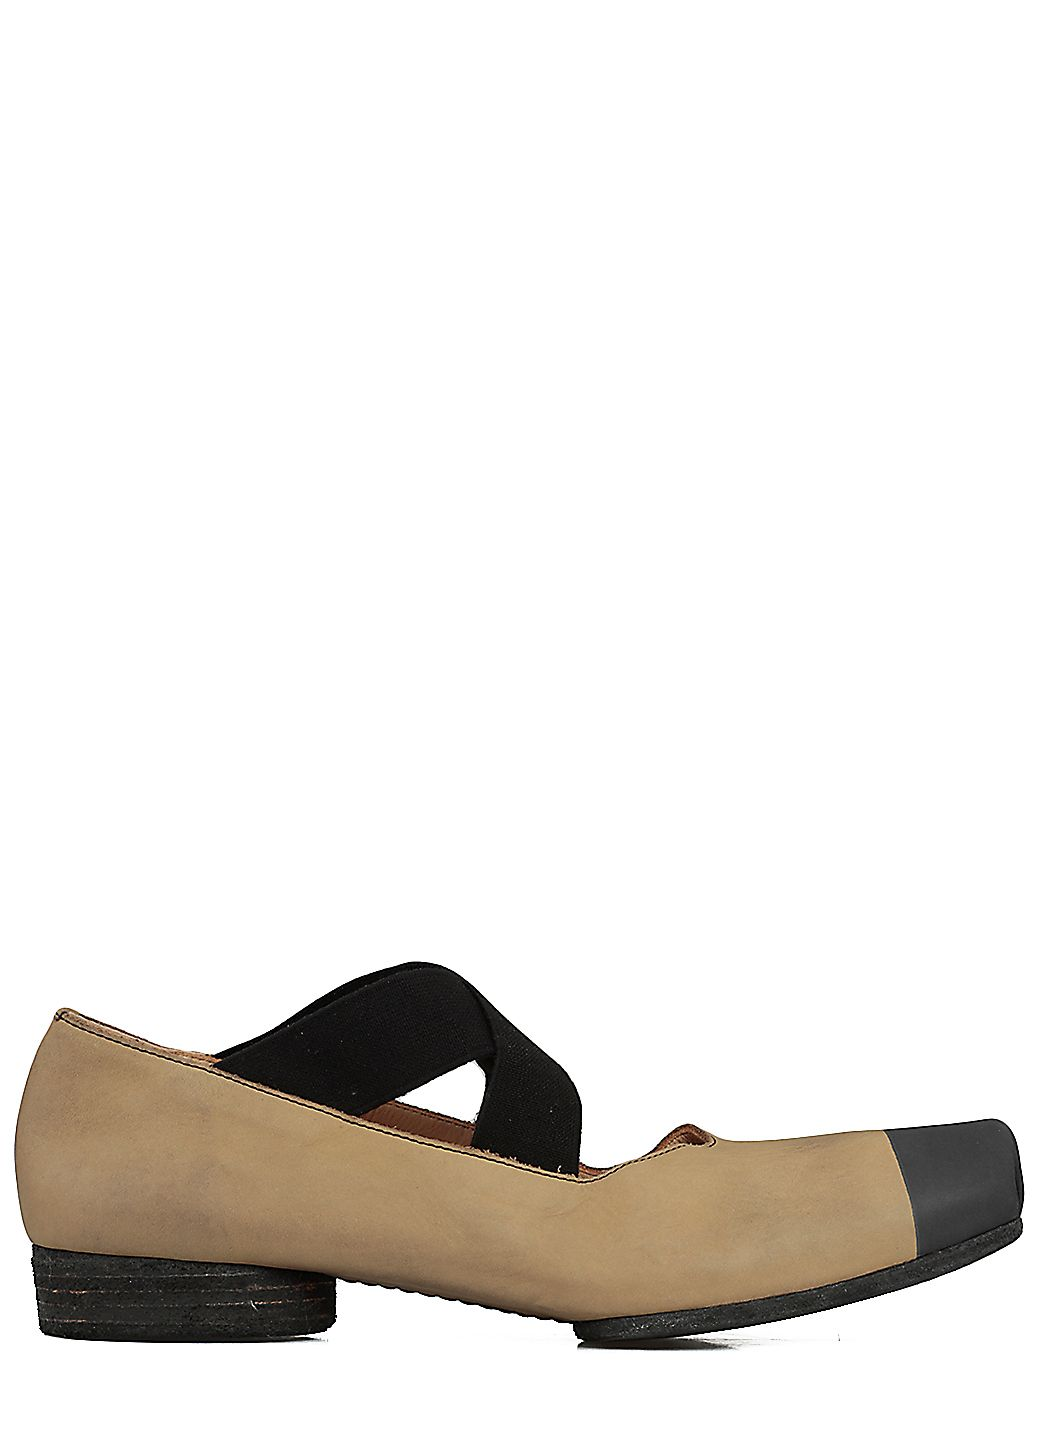 Two-tone square toe ballerinas